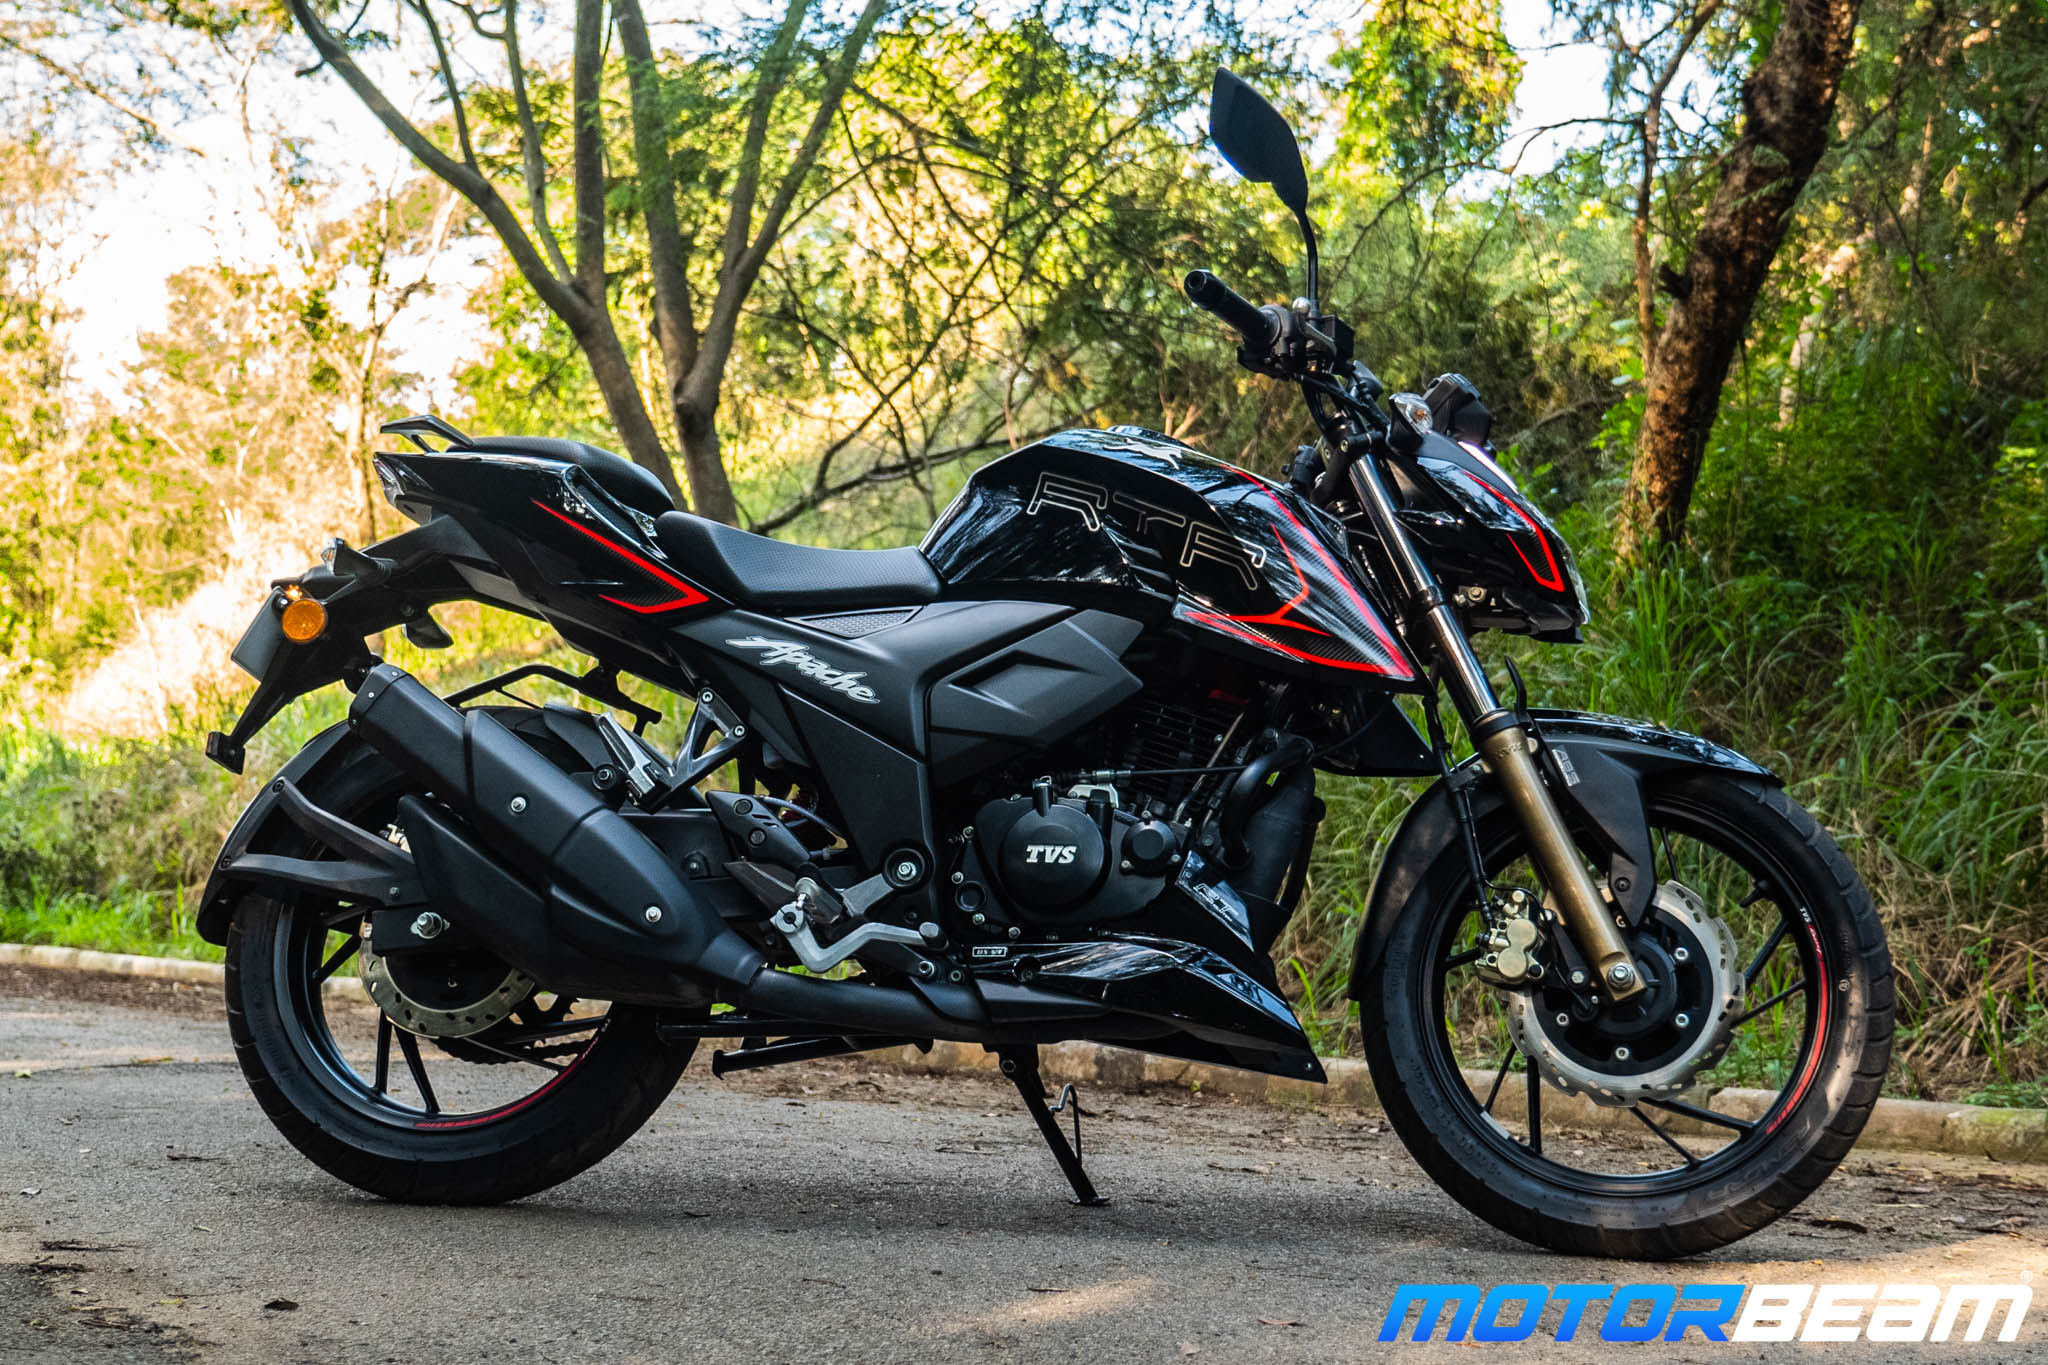 2020 TVS Apache 200 Review Styling